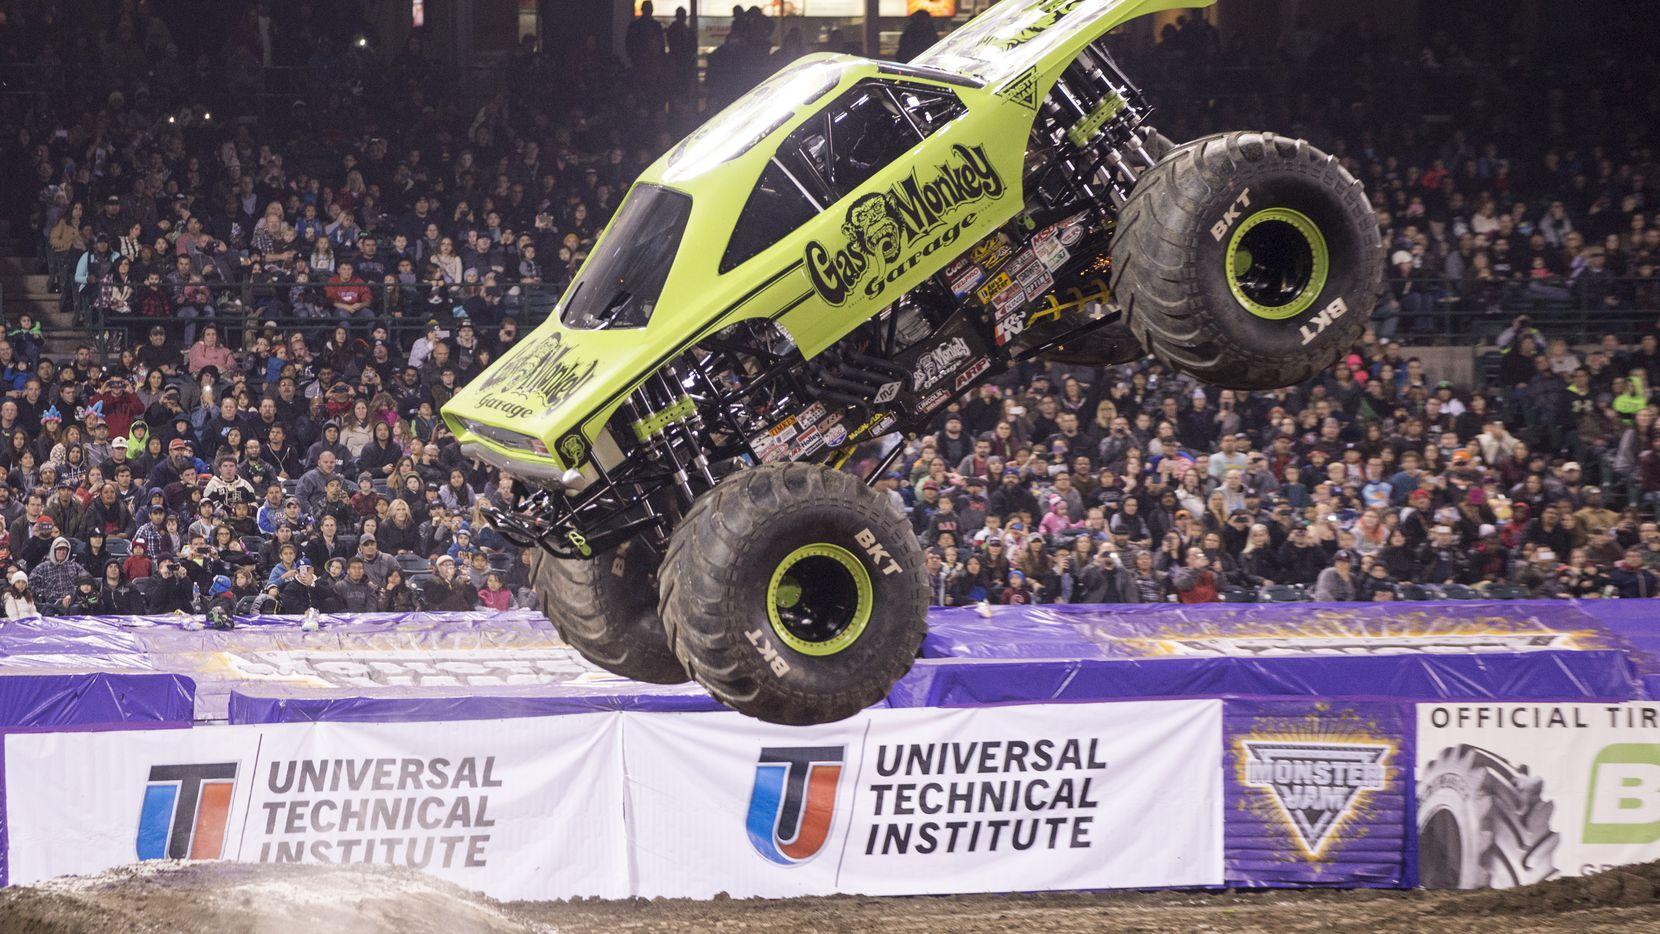 Don T Get Monster Trucks The Dude Who Drives The Gas Monkey Truck Dares You To Not Like Monster Jam